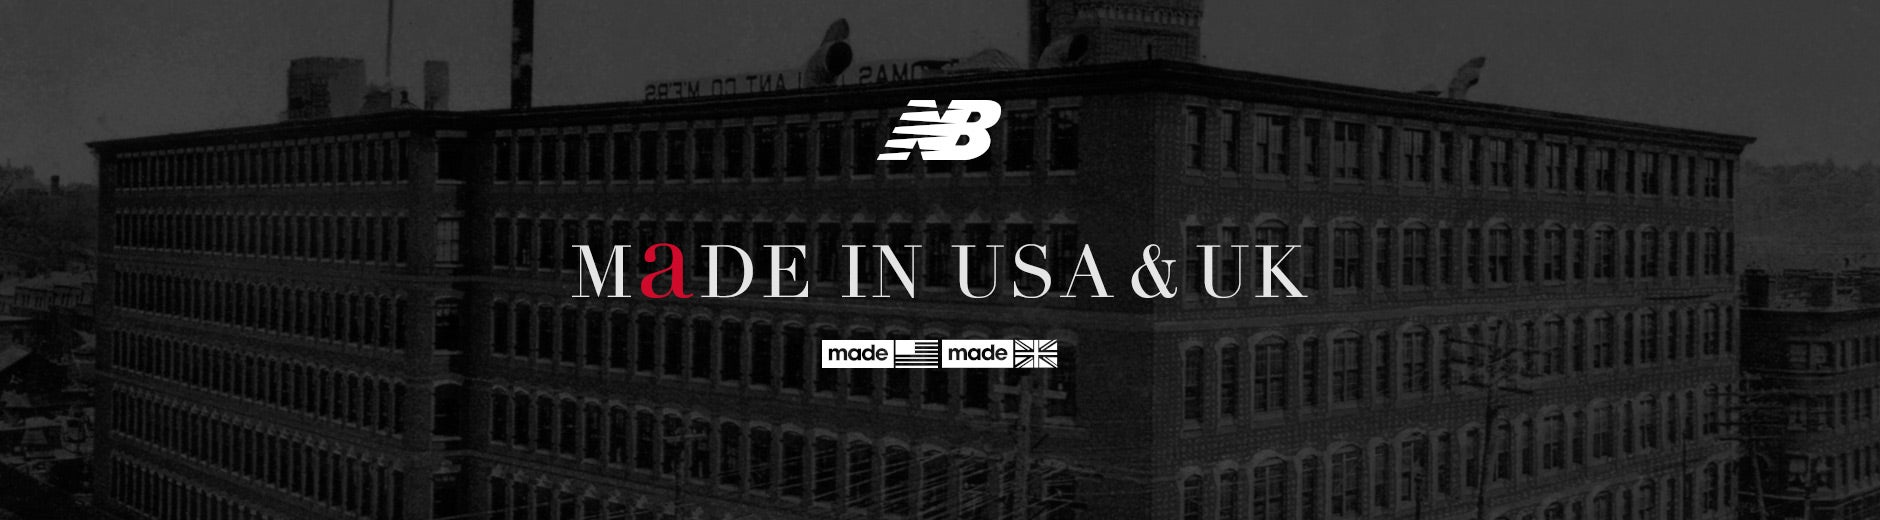 NB MaDE IN USA&UK